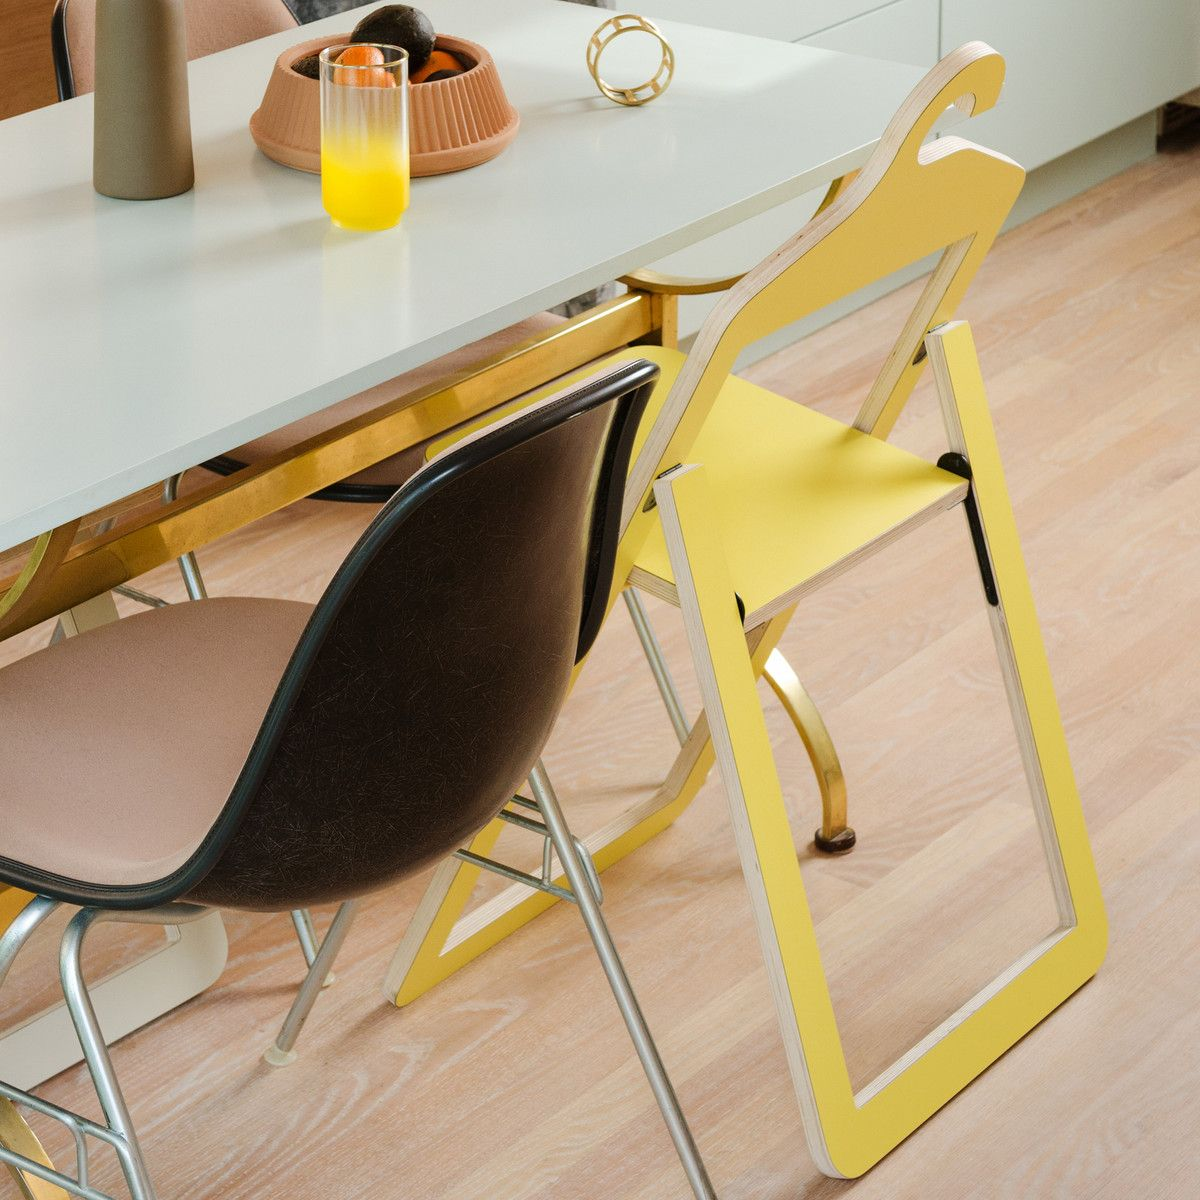 Umbra Hanger Chair, yellow at dining table in the kitchen